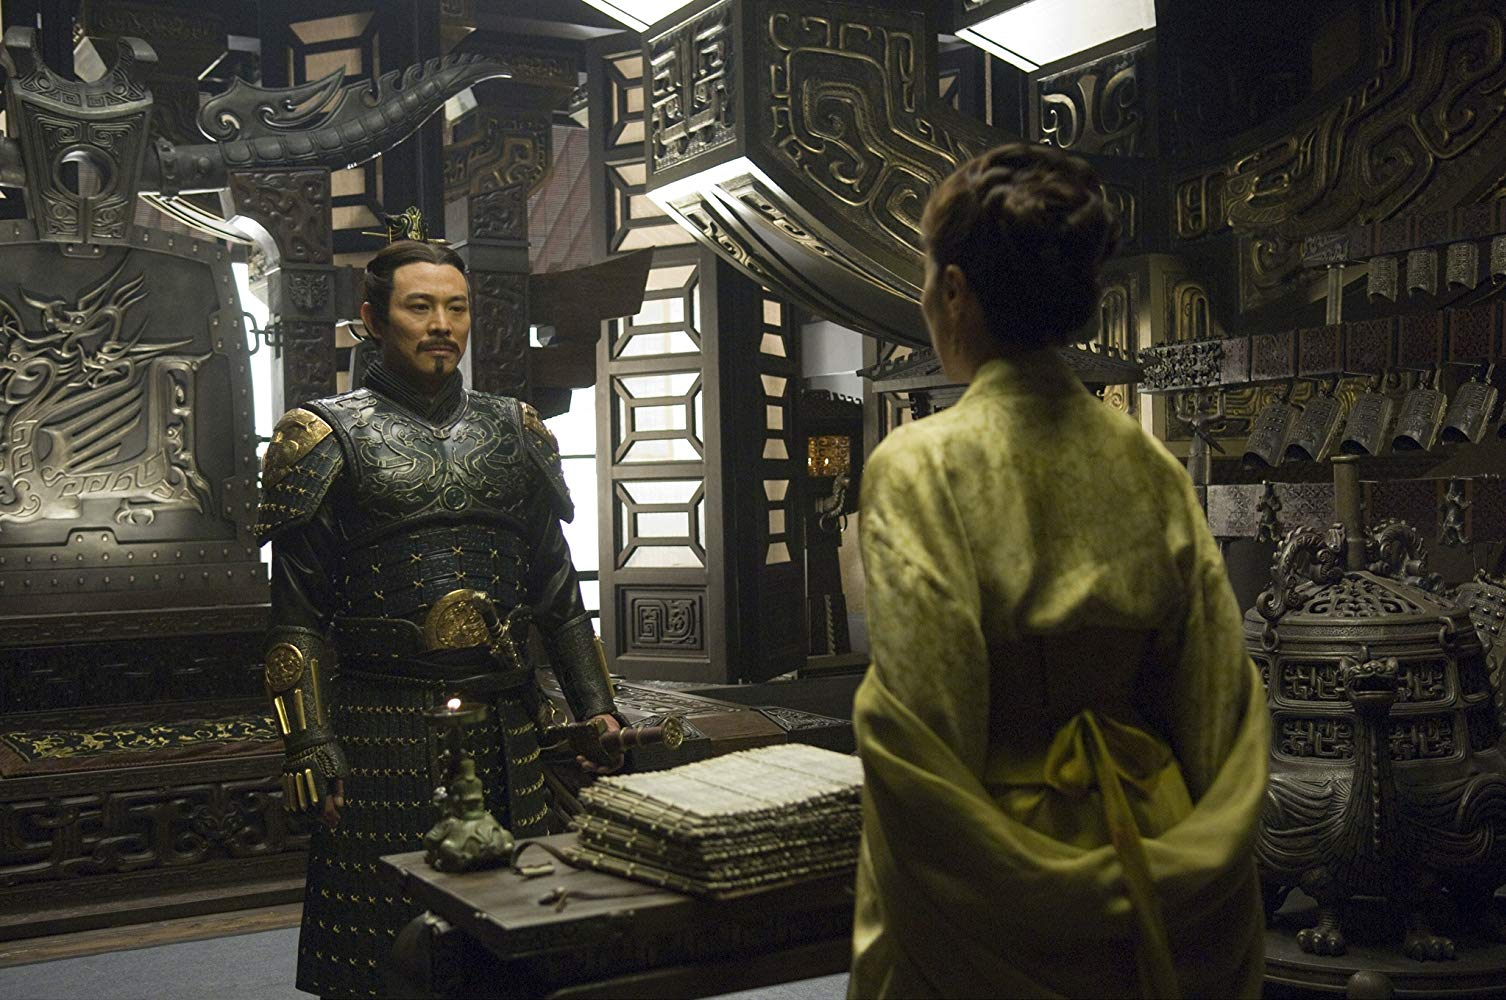 Jet Li as the Dragon Emperor in The Mummy: Tomb of the Dragon Emperor (2008)